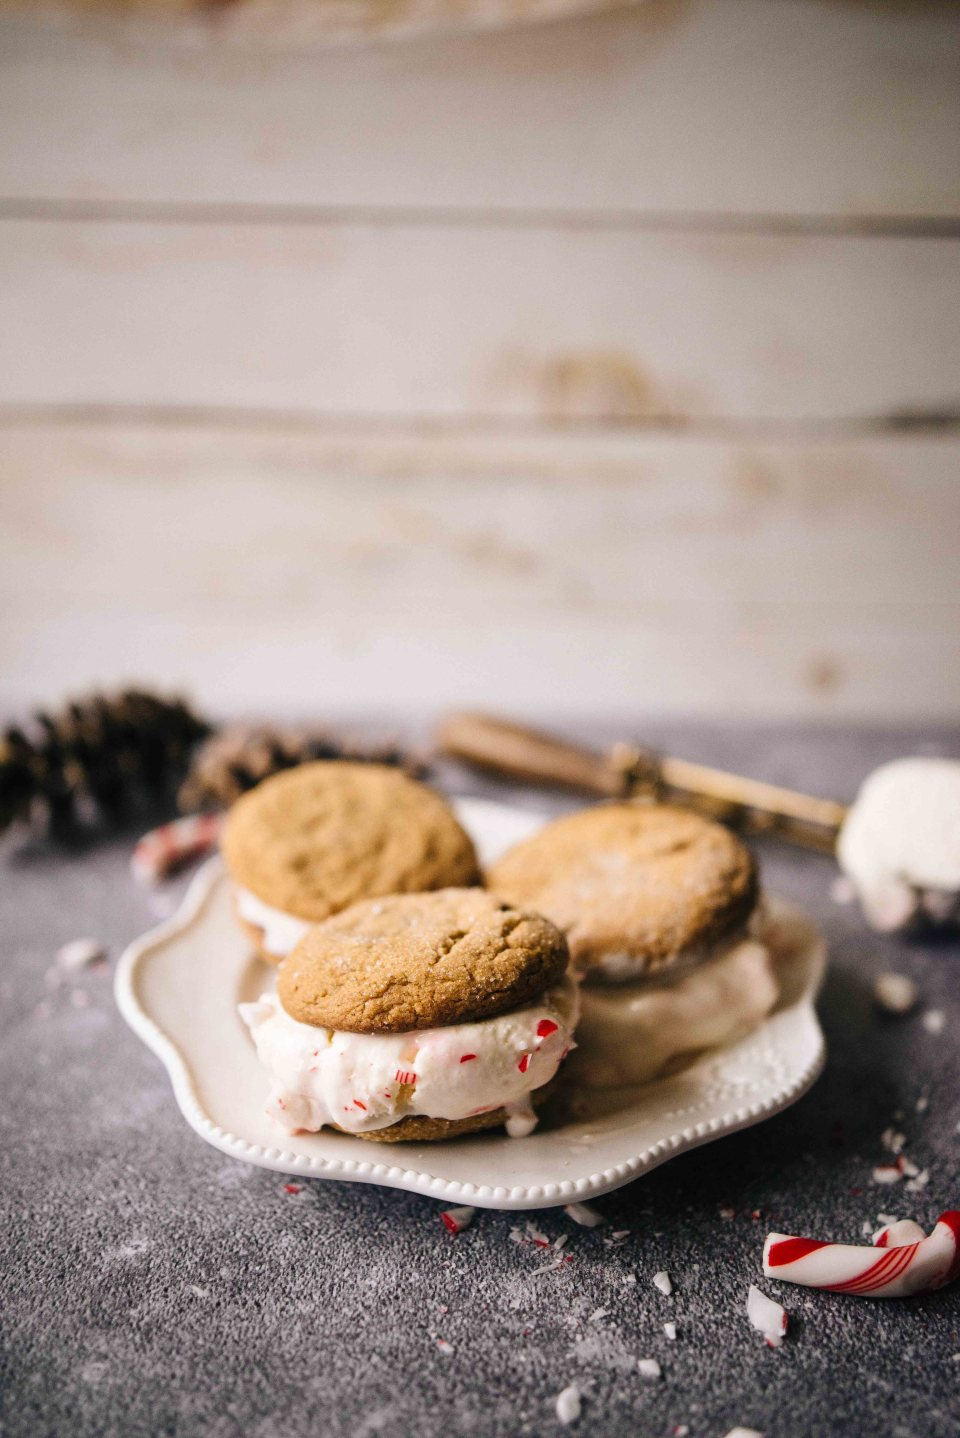 Homemade Candy Cane Ice Cream and Ginger Molasses Cookies for Christmas Ice Cream Sandwiches